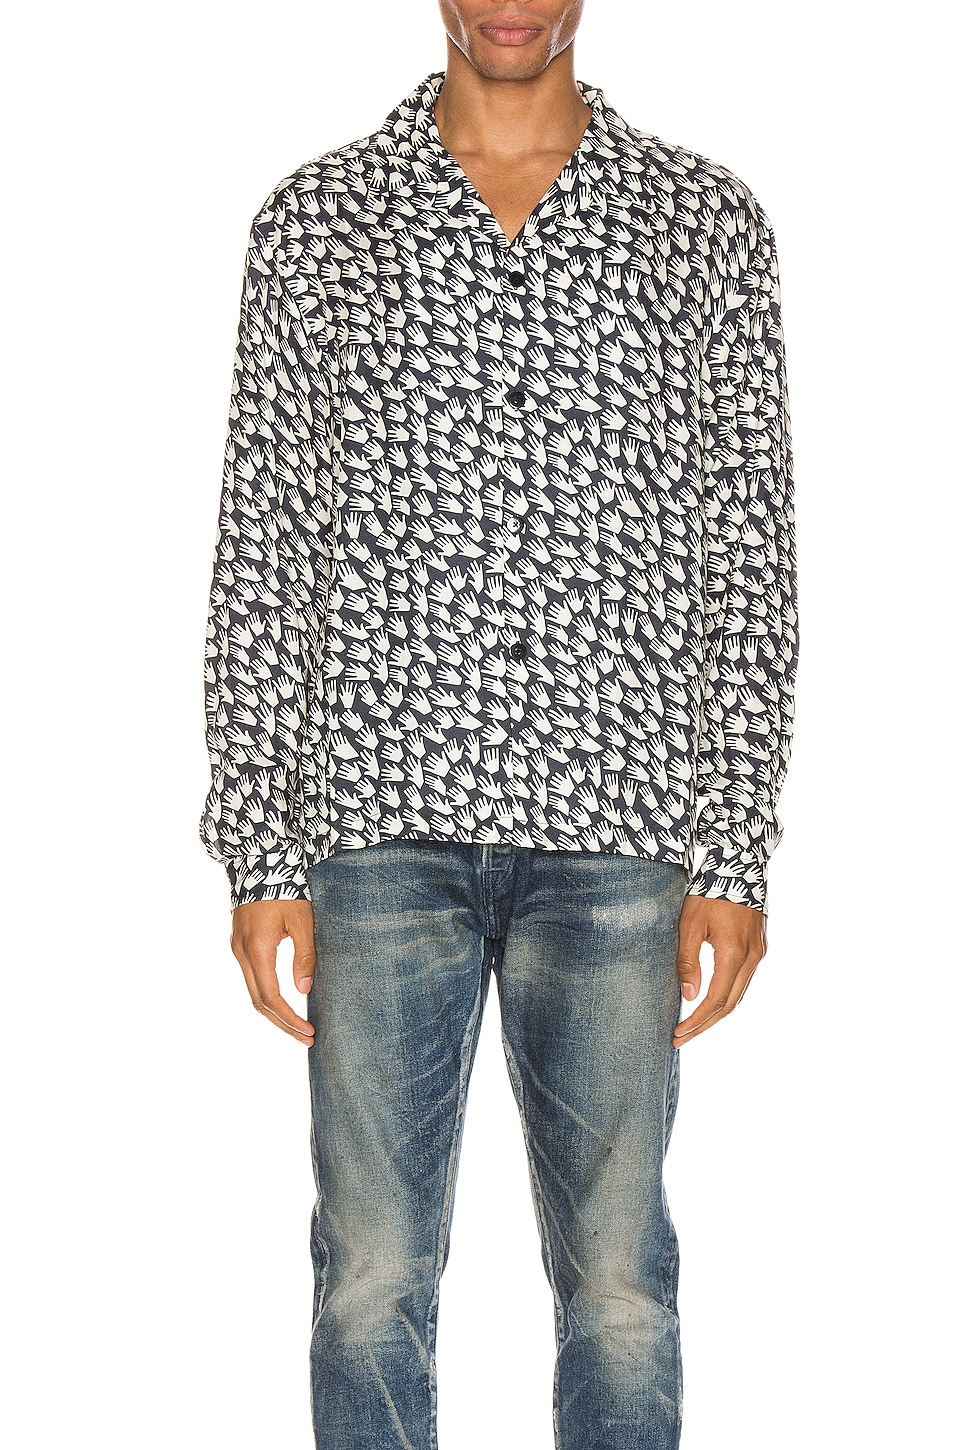 JOHN ELLIOTT Smoking Shirt en Cadet & Ivory